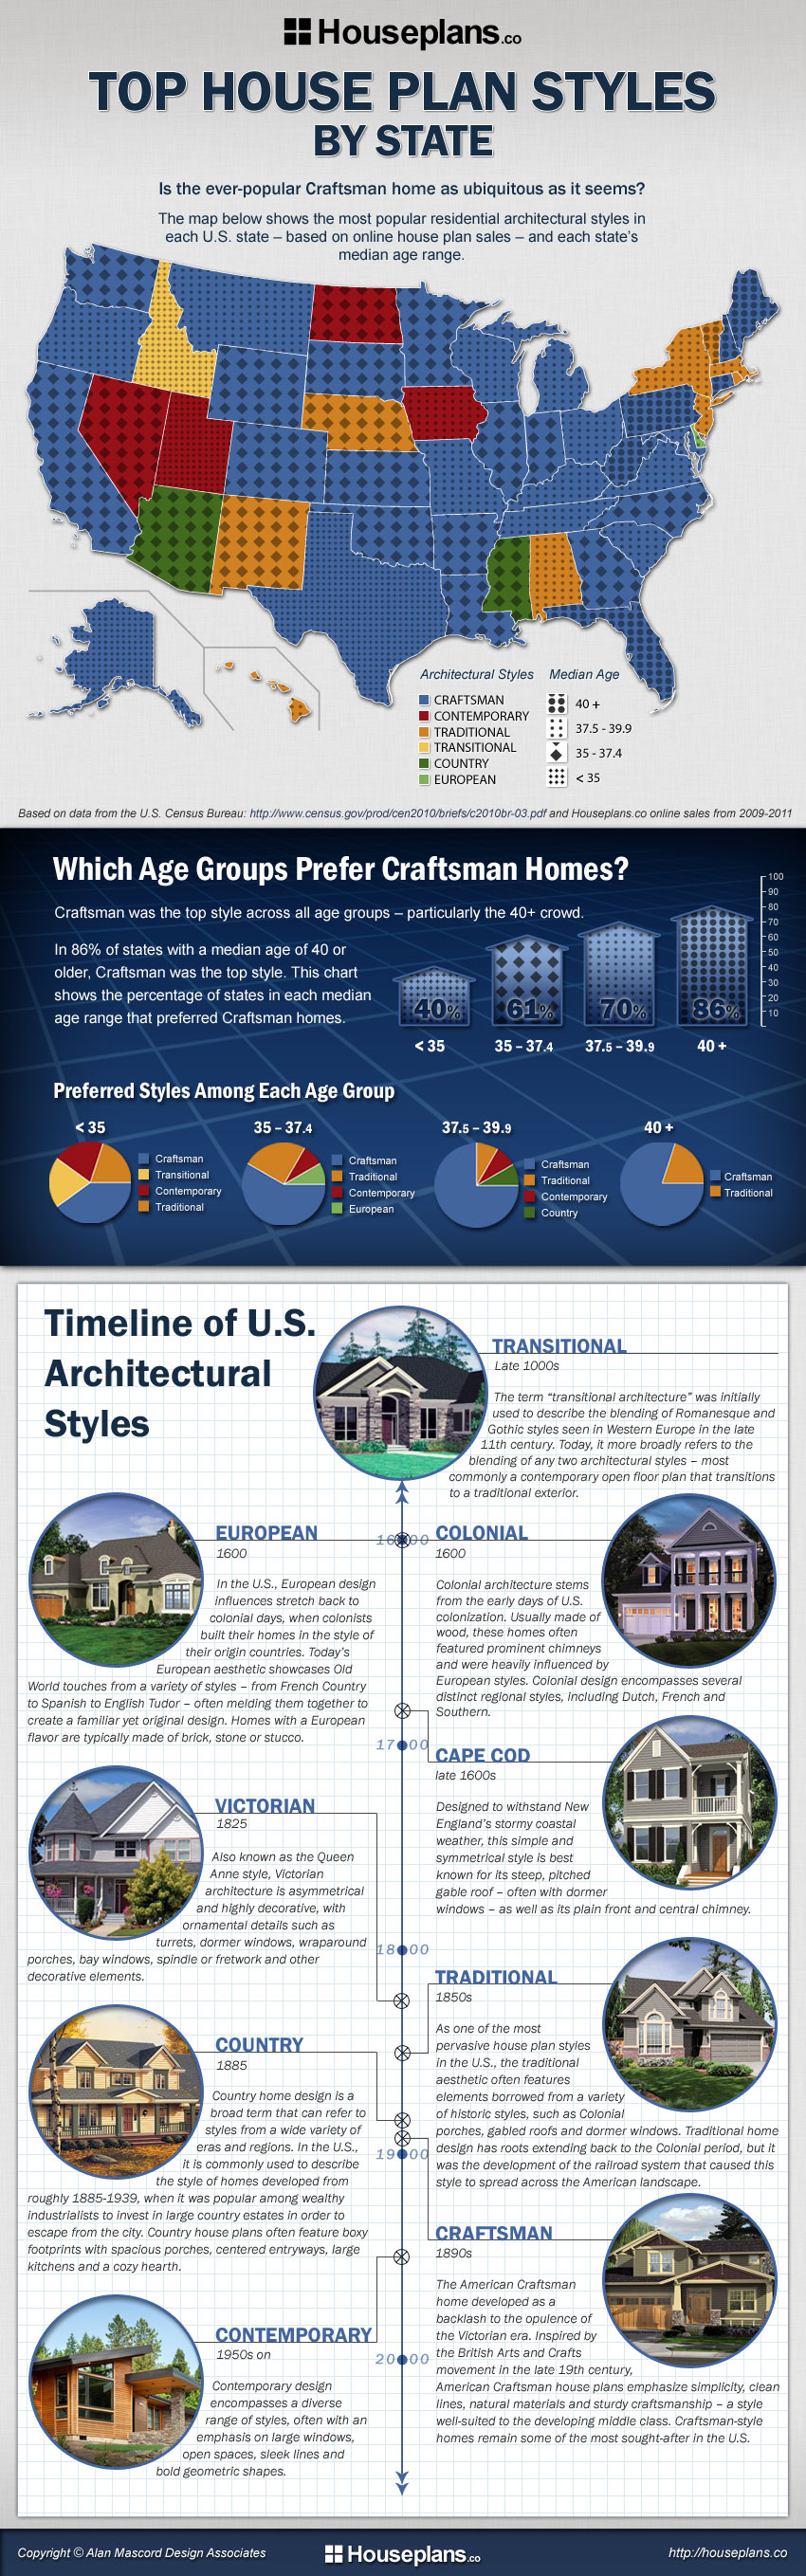 Top House Plan Styles By State - An Infographic from Infographics Showcase